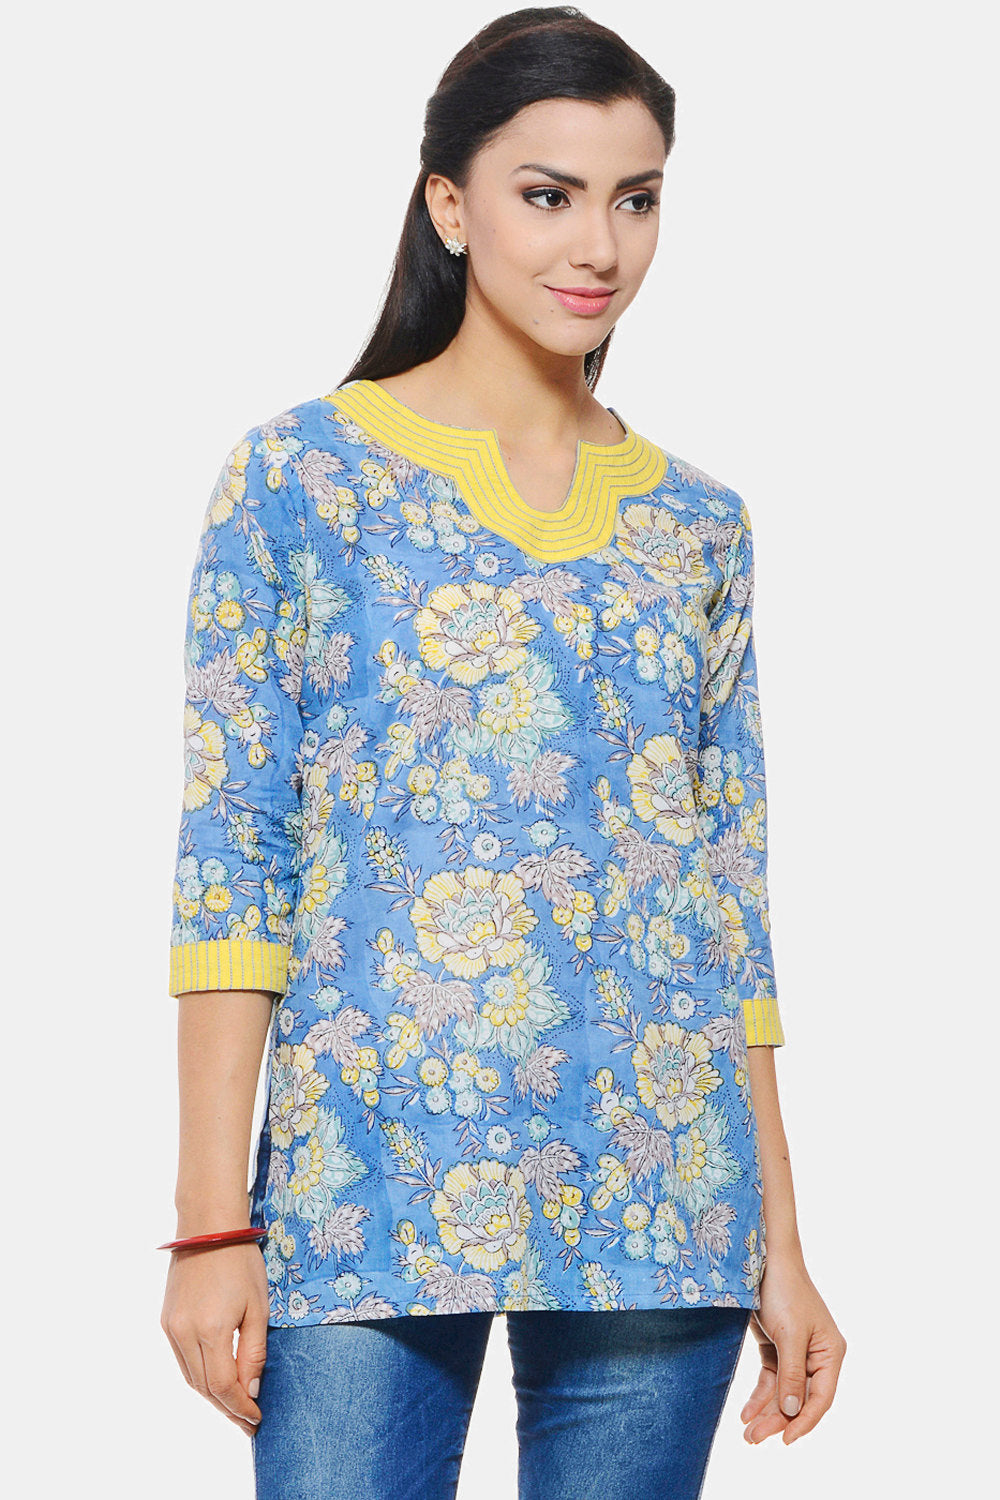 Hand Block Printed Indian Tunic in blue floral design with Embroidery on neck and sleeves